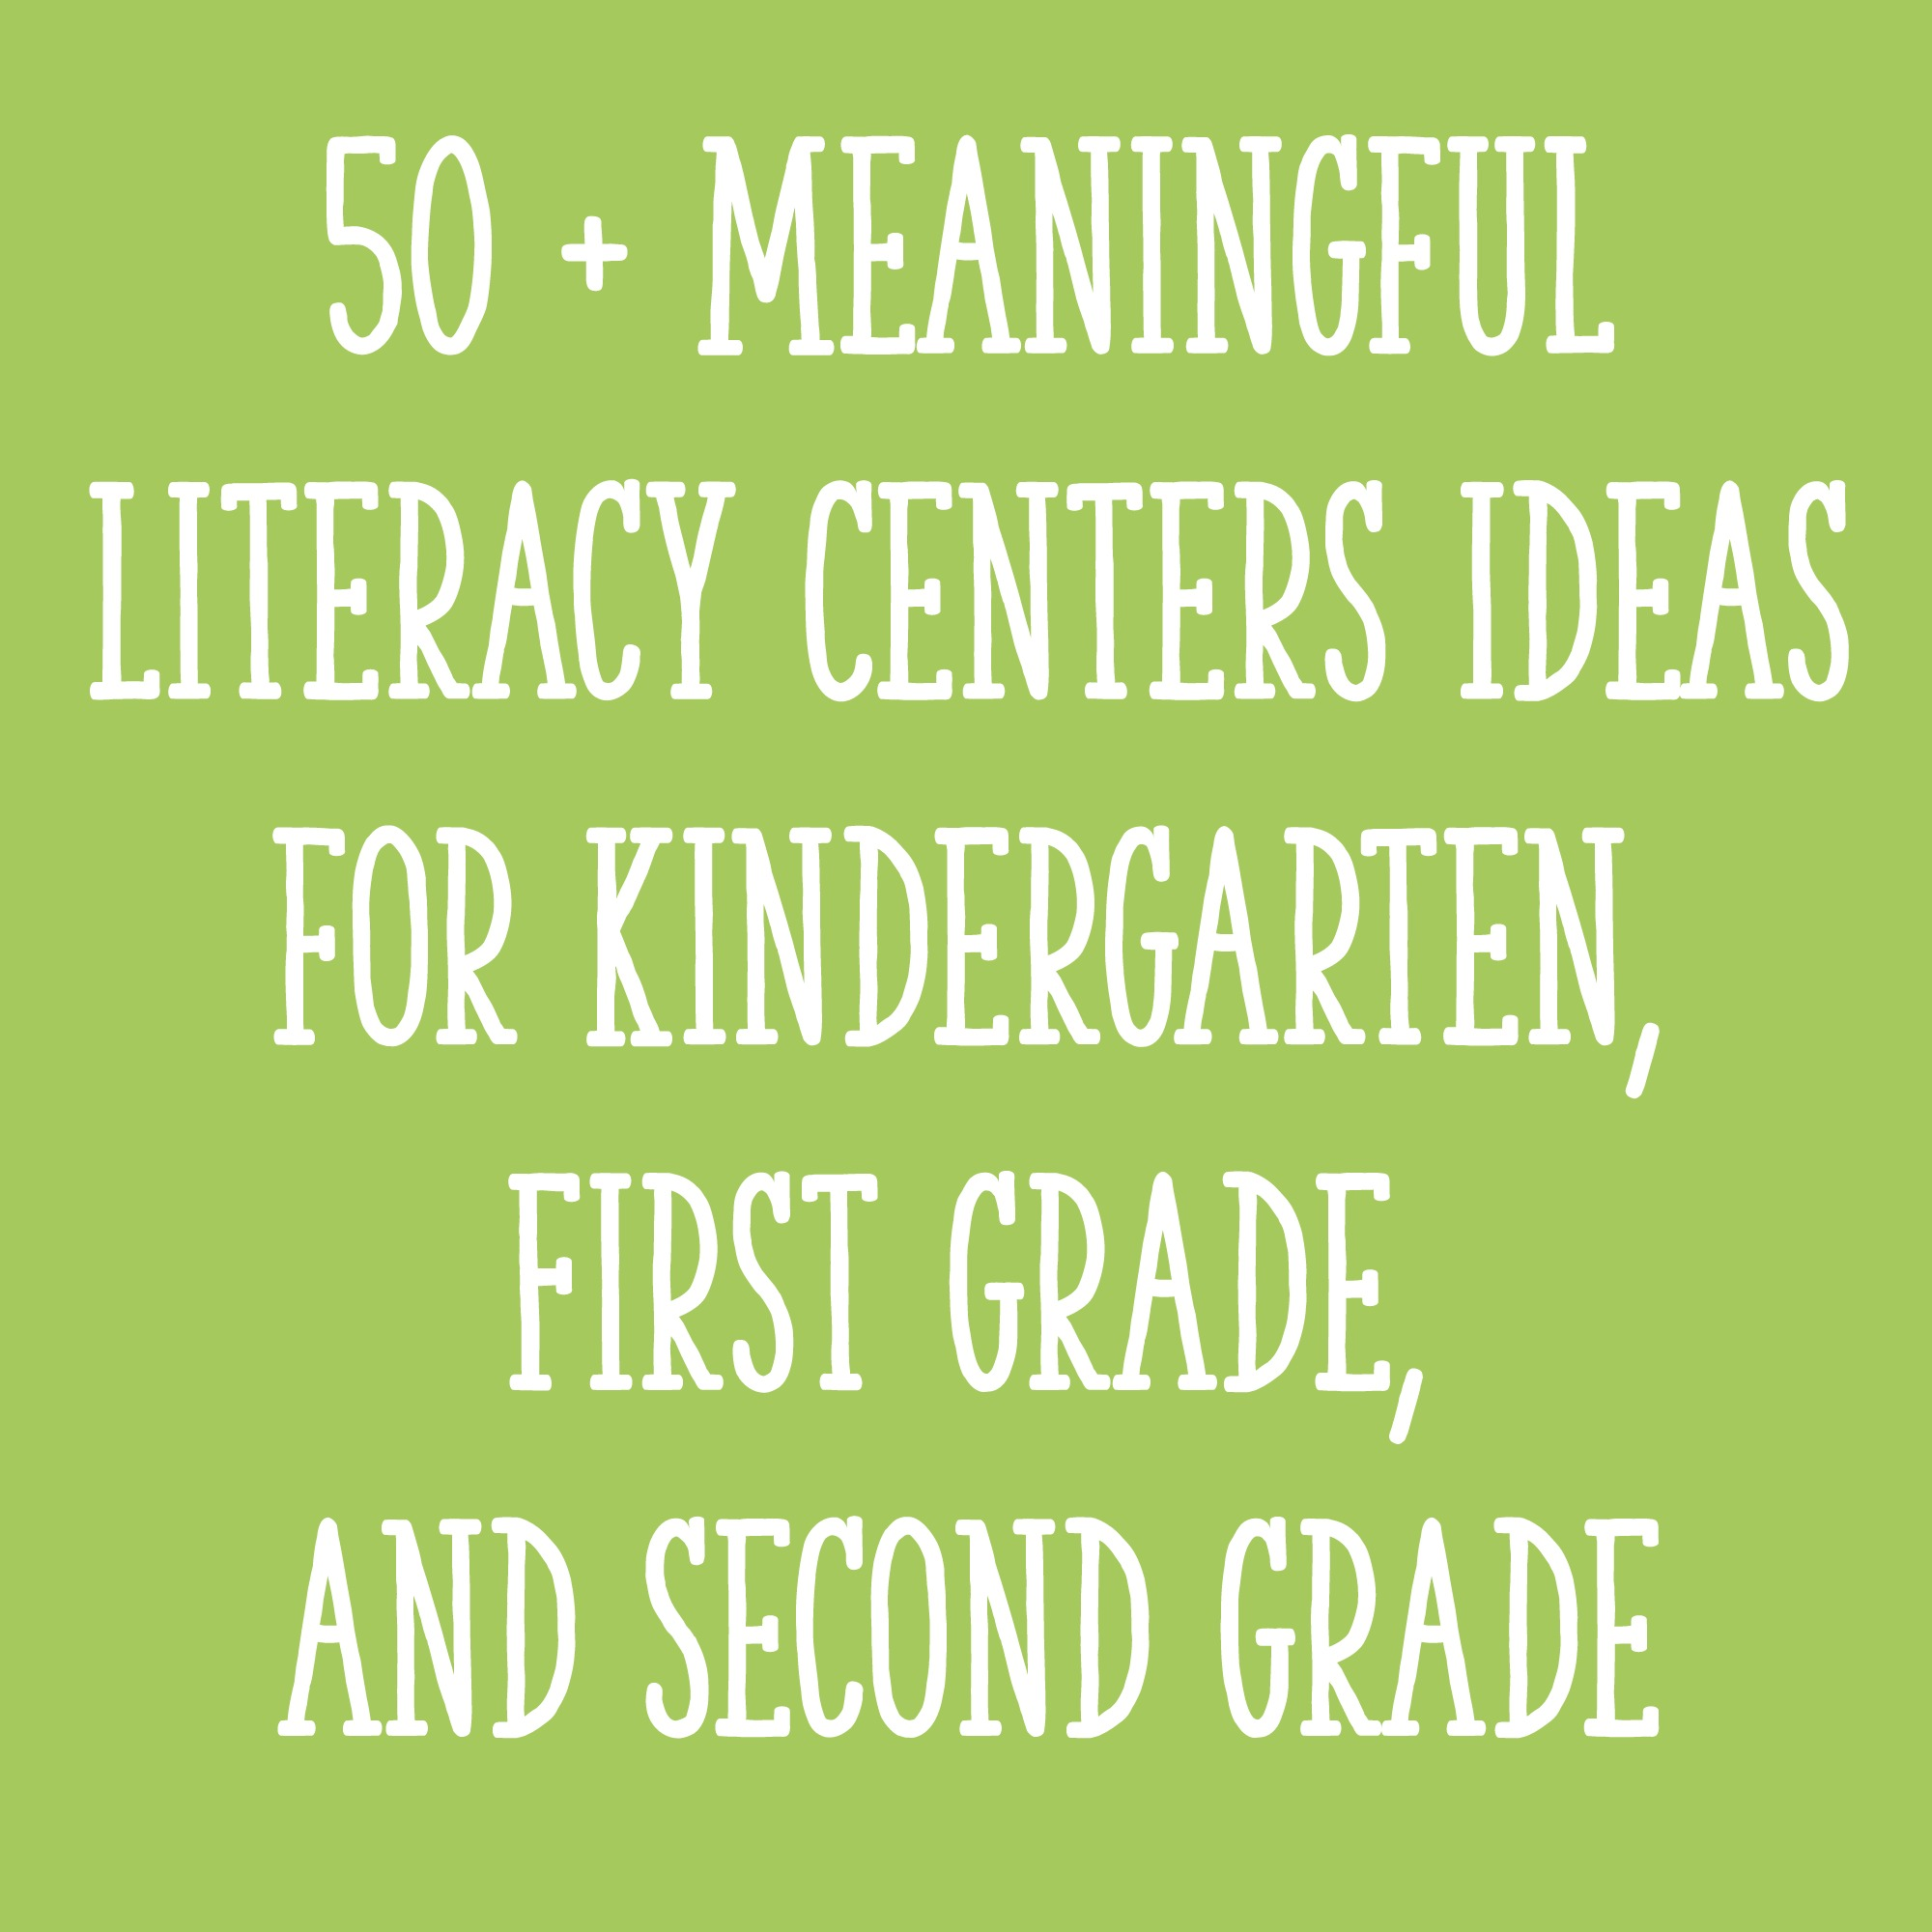 hight resolution of 50 + Meaningful Literacy Centers Ideas for Kindergarten